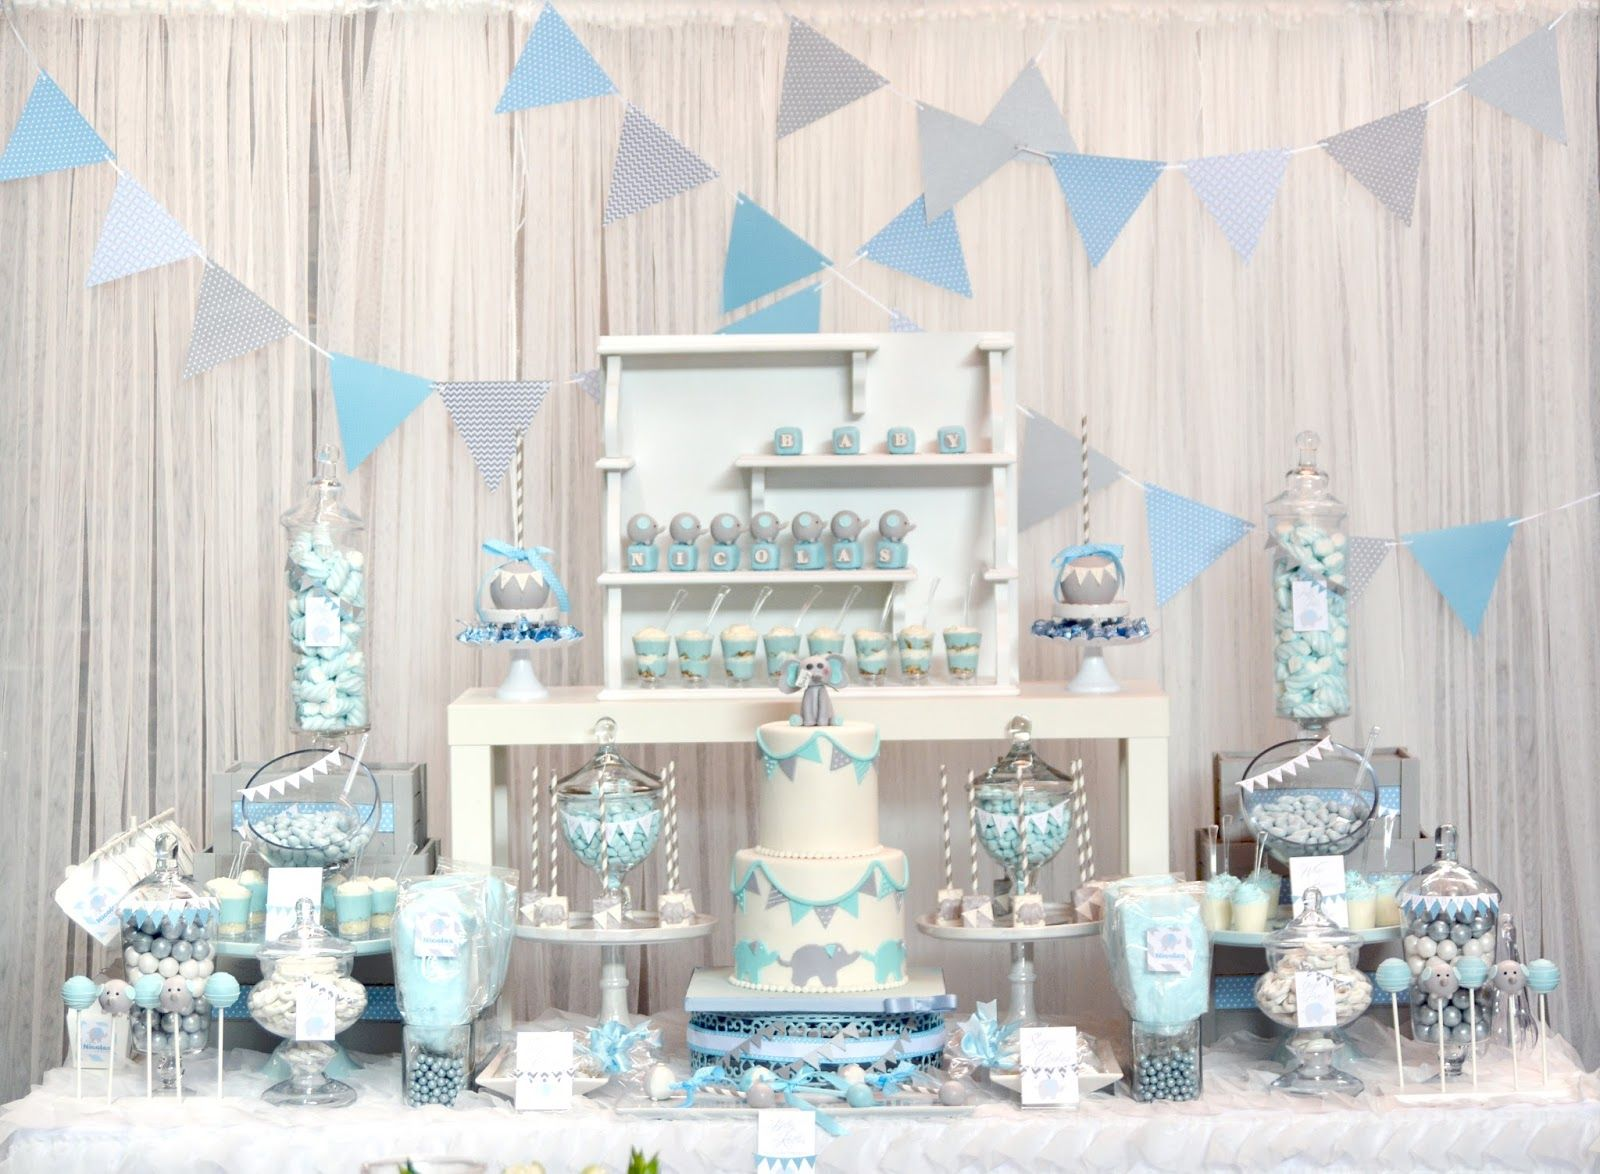 Baby Blue and Gray Elephant Baby Shower | Elephant baby shower ...